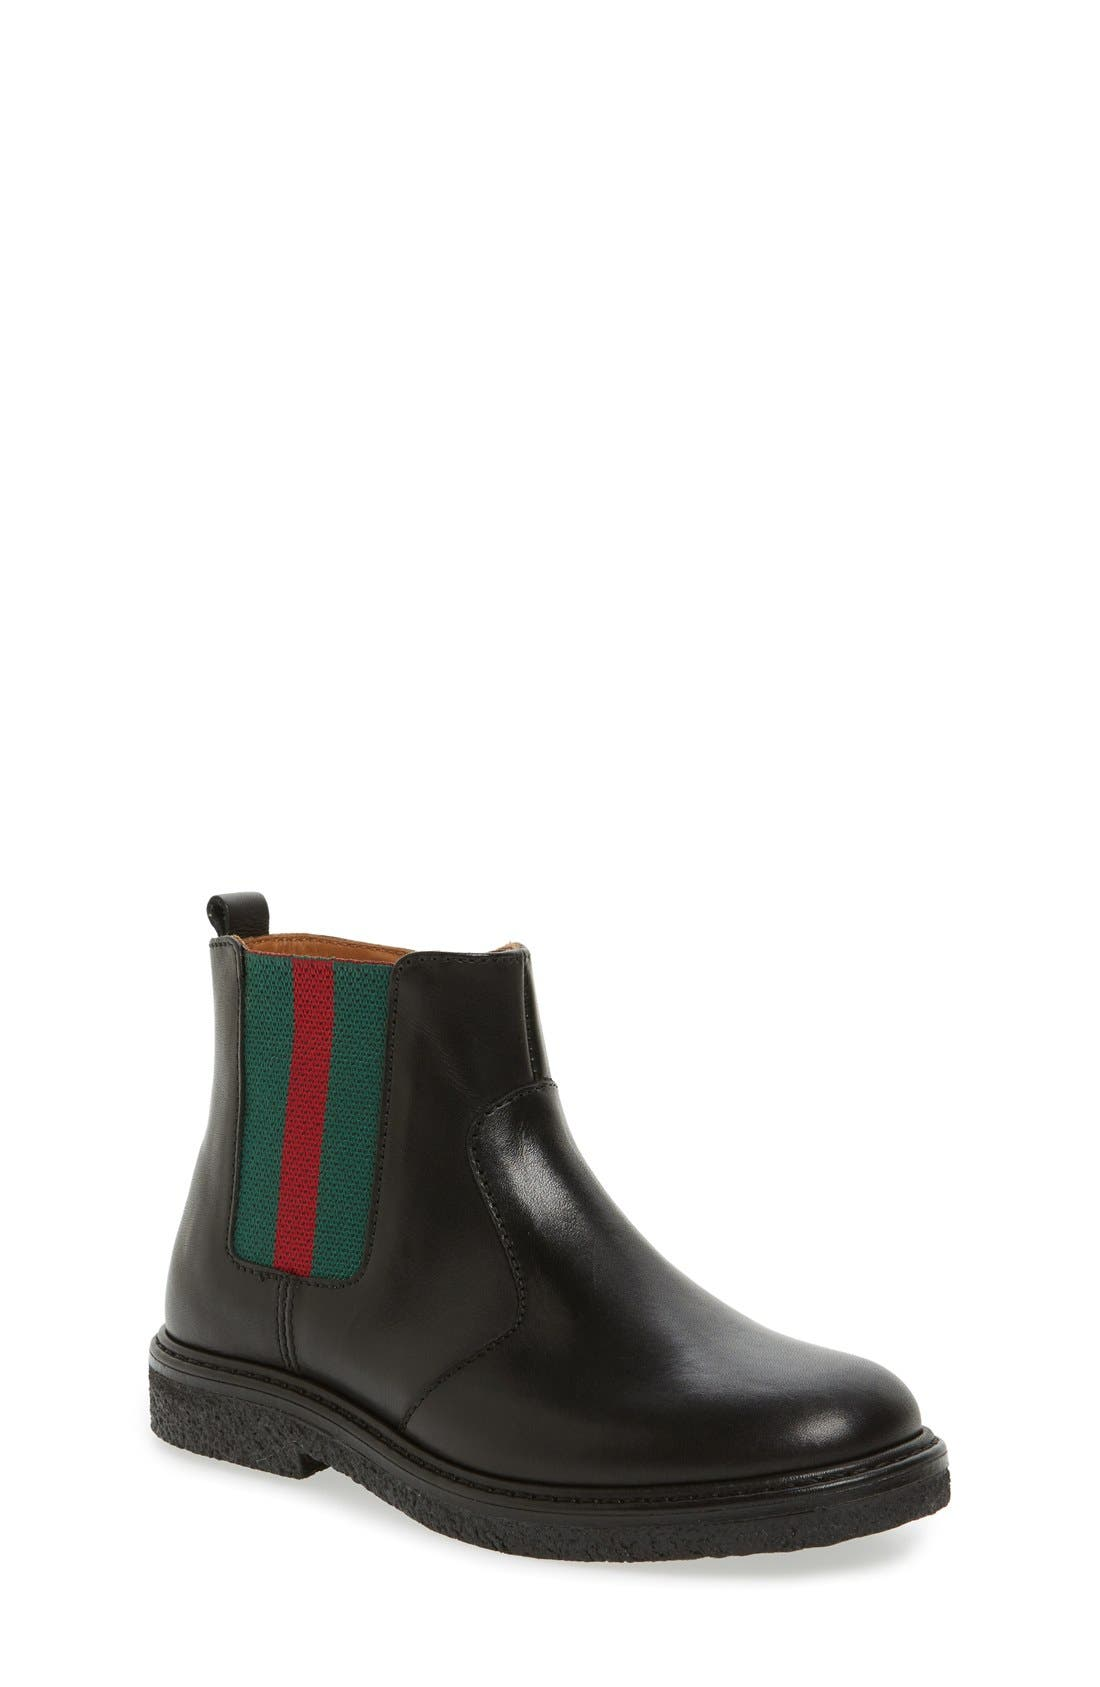 'Joshua' Chelsea Boot,                             Main thumbnail 1, color,                             001